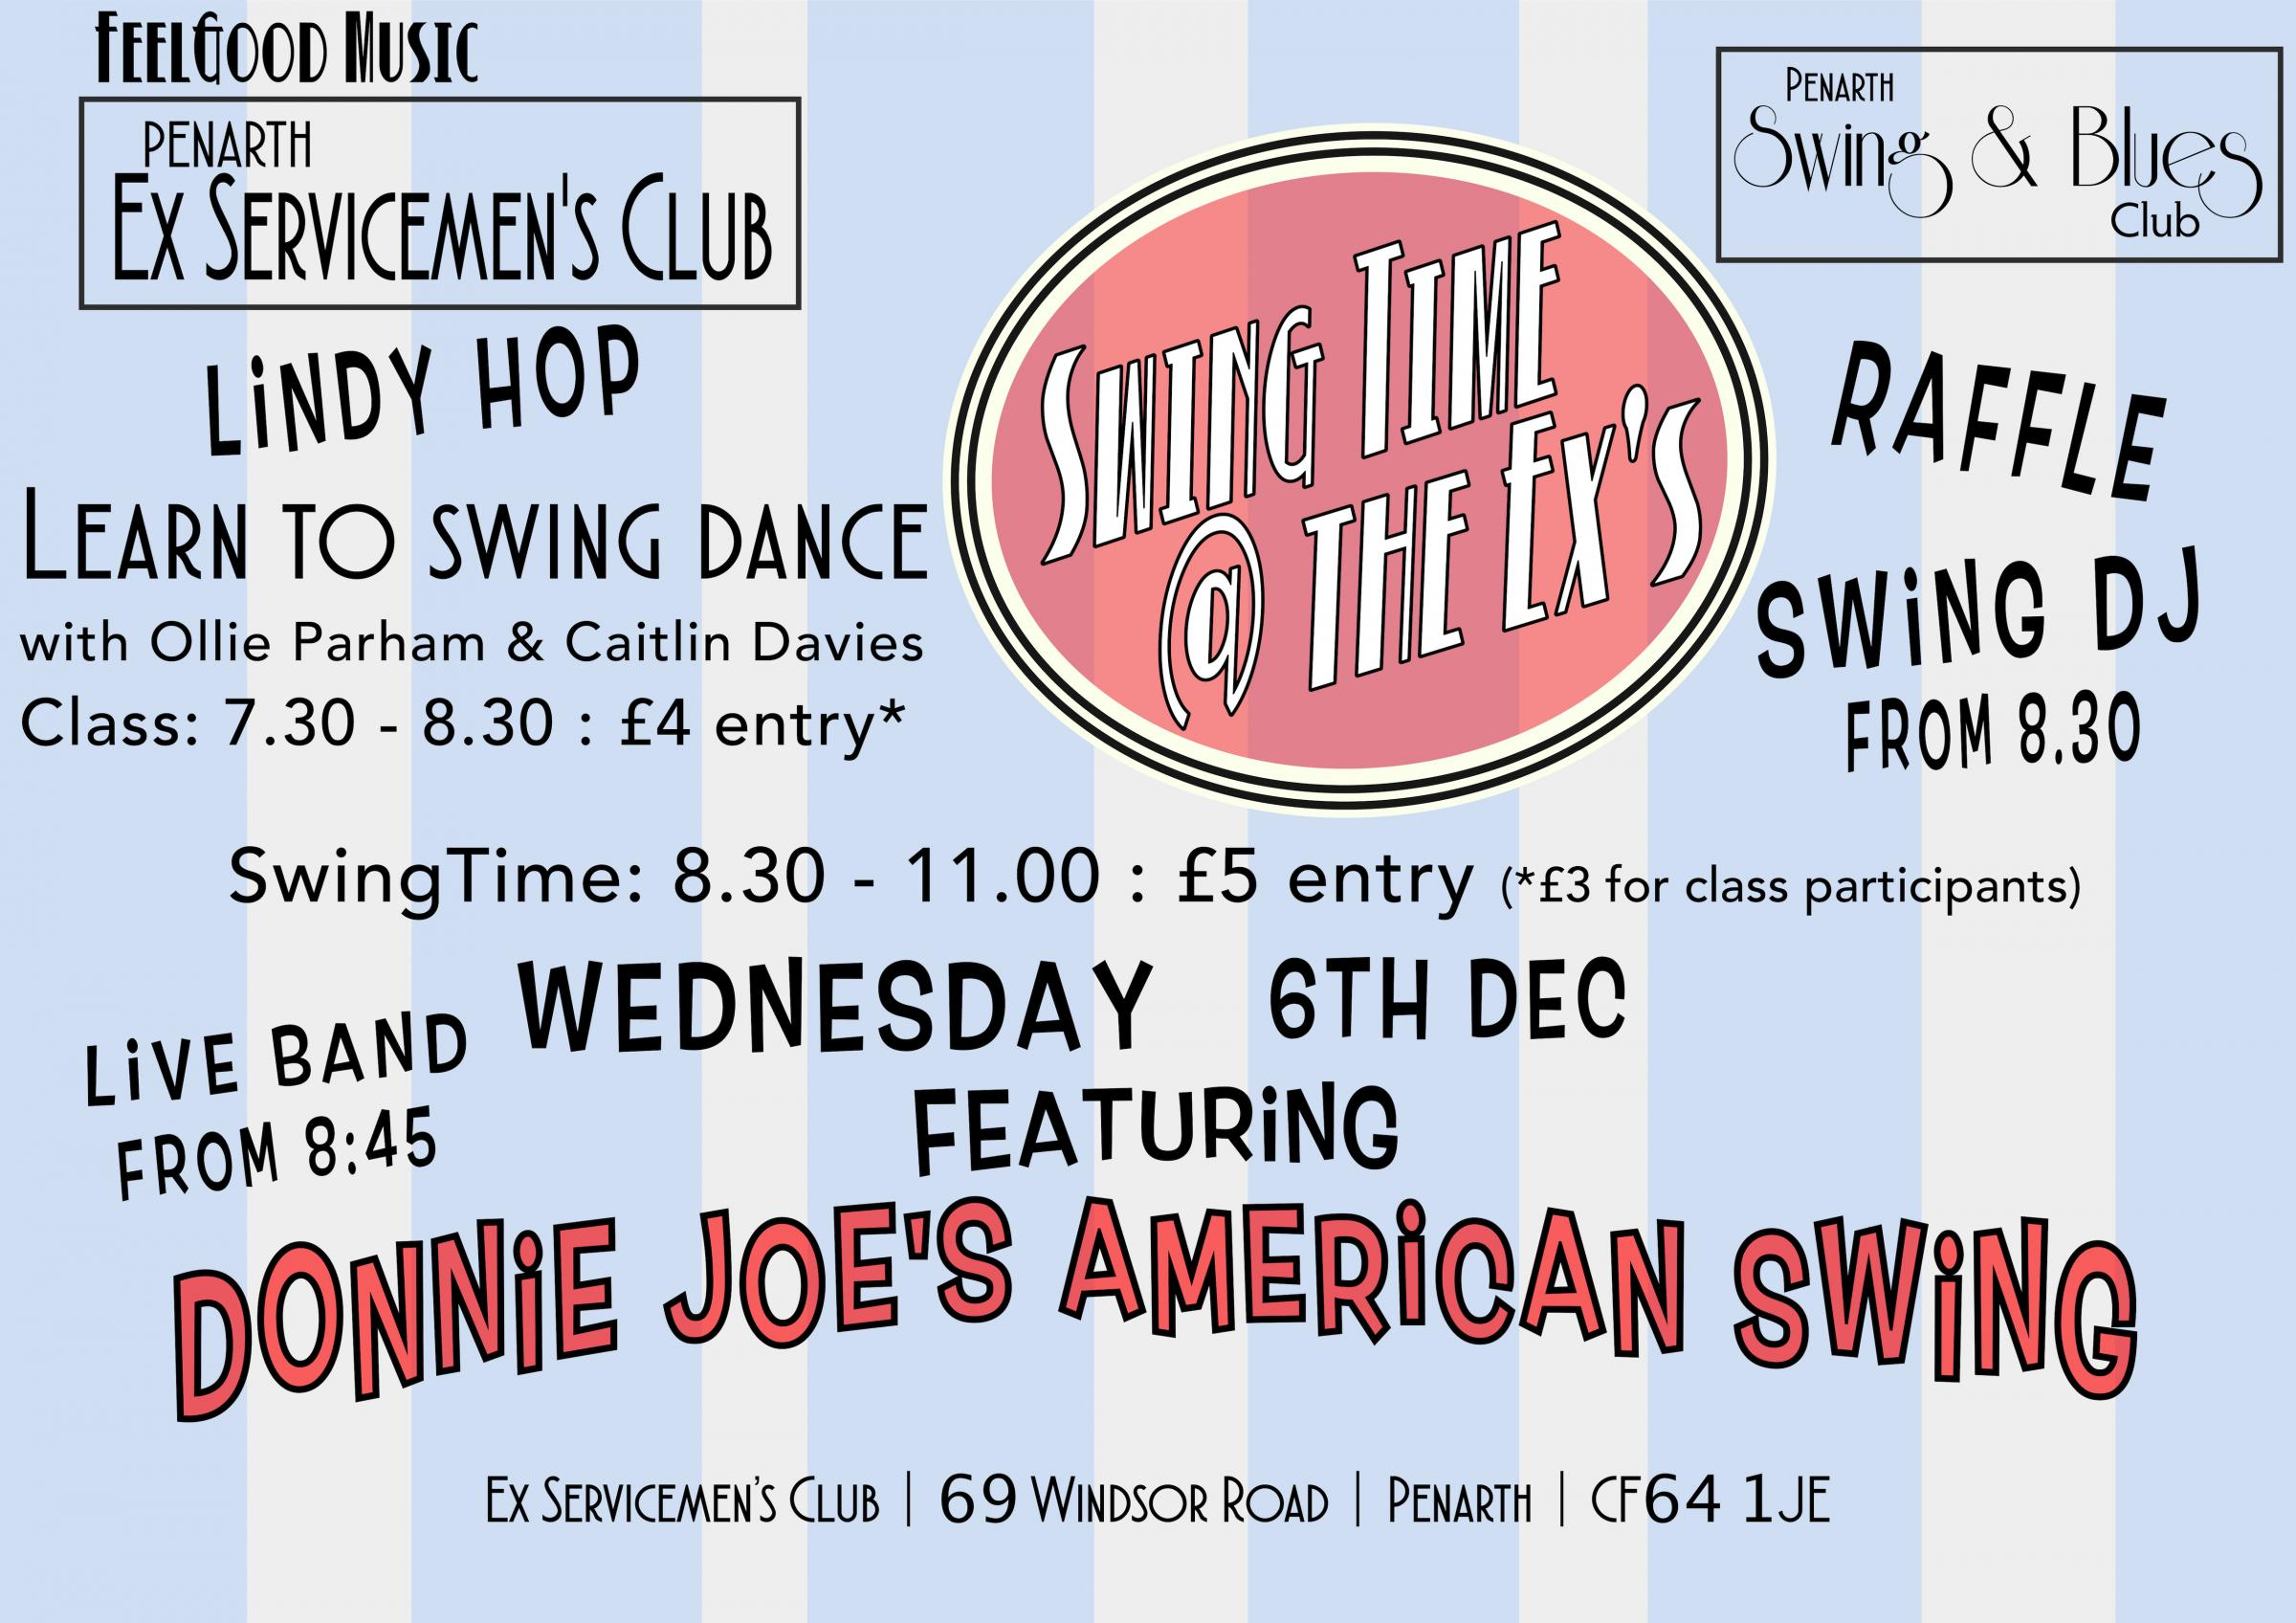 Learn to Swing Dance with Ollie Parham